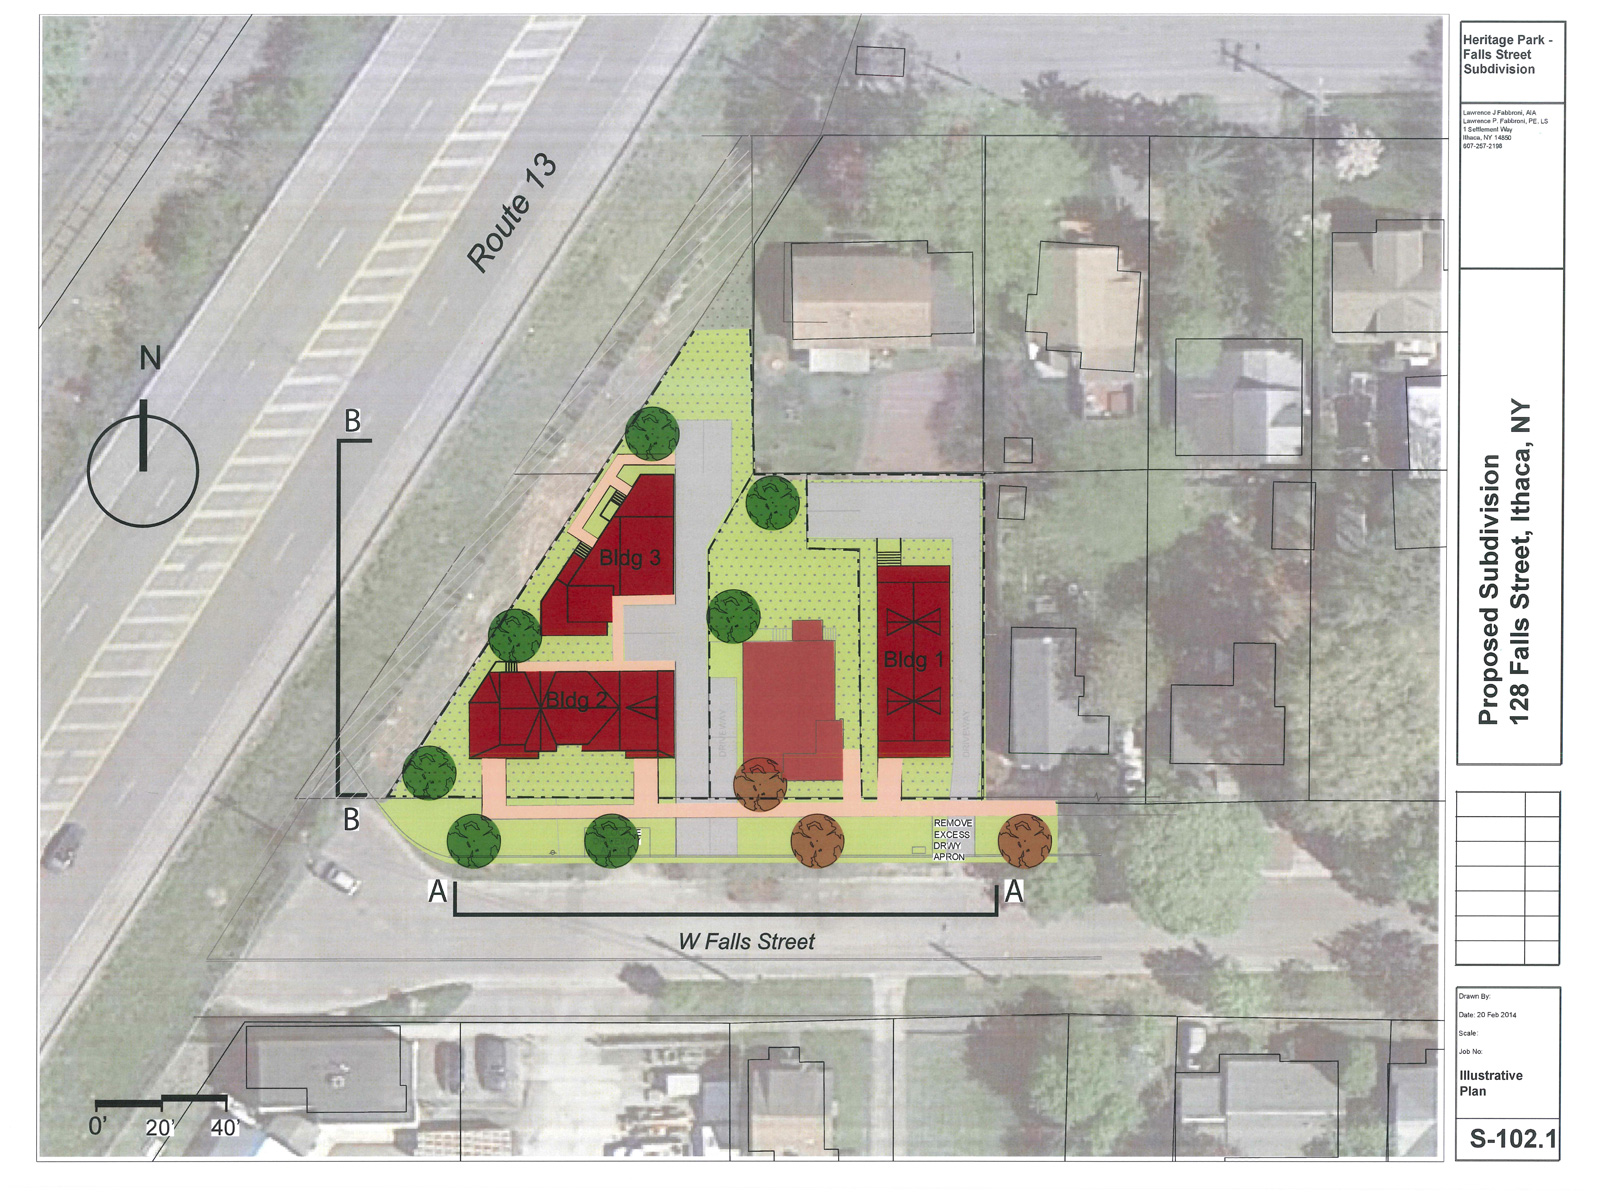 128-West-Falls-Street---SPR---Site-Plans-and-Elevations---02-25-14